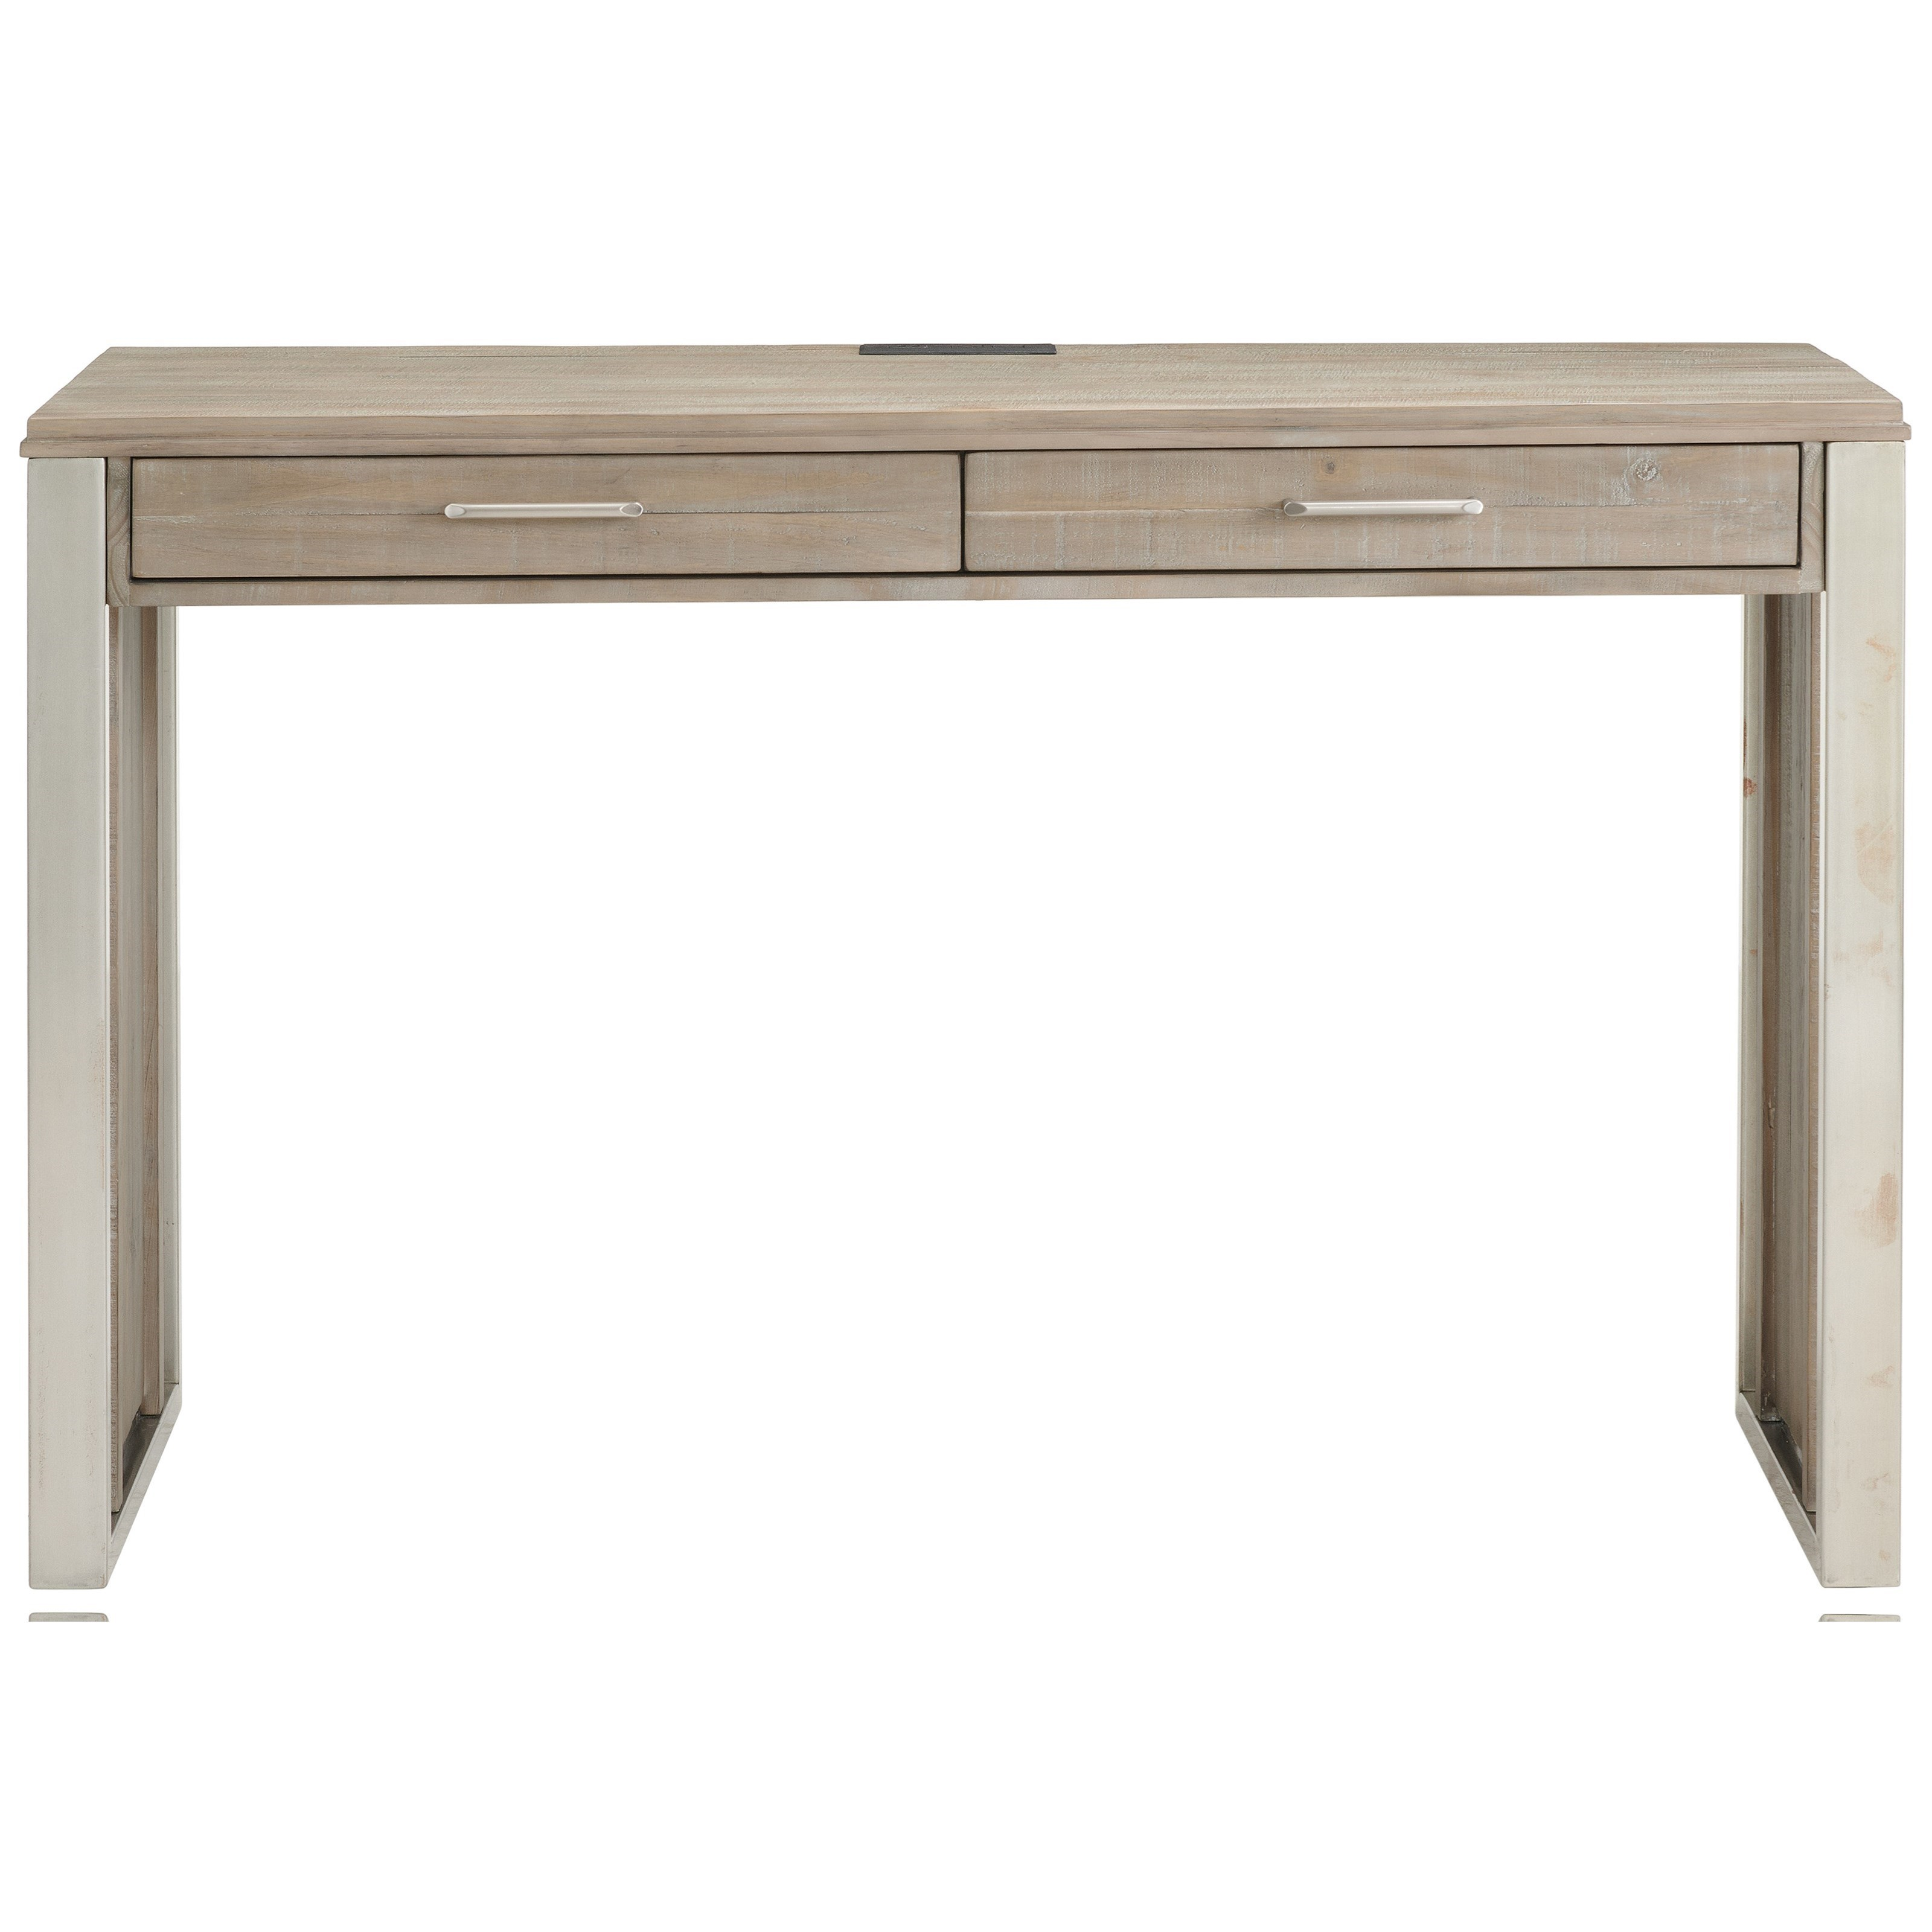 Intrigue Table Desk  by Riverside Furniture at A1 Furniture & Mattress